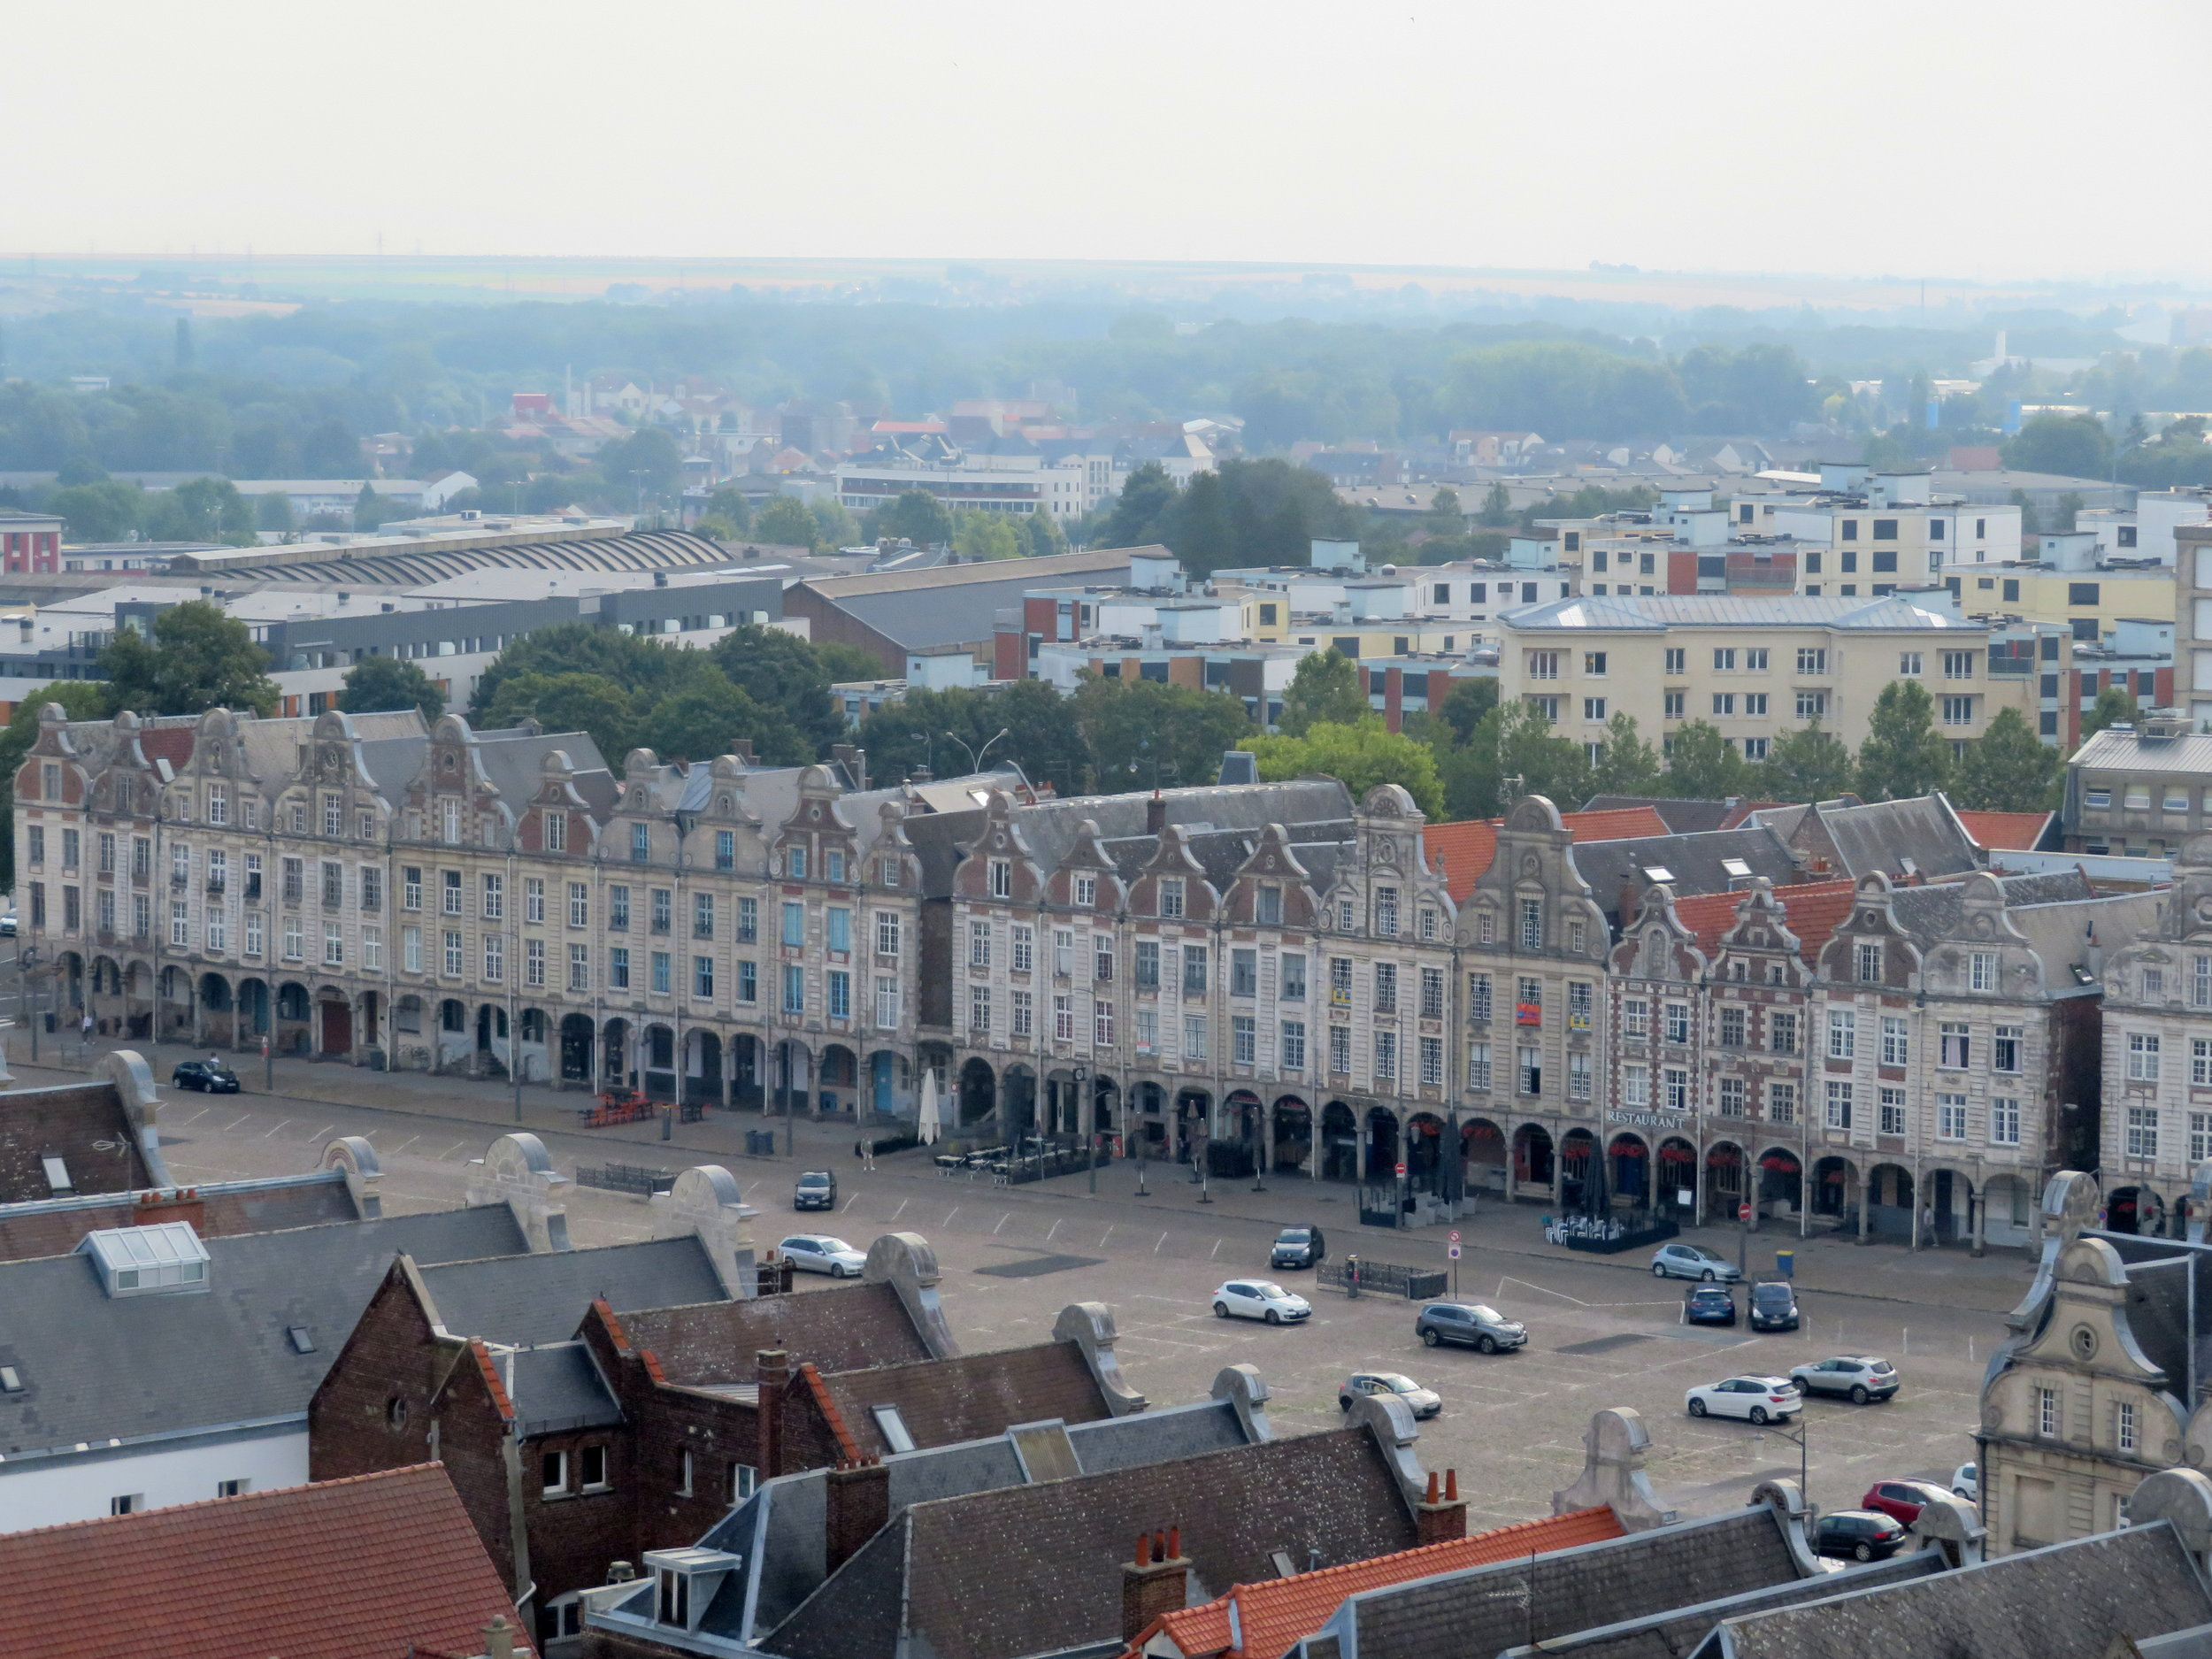 Arcade view of Grand Place